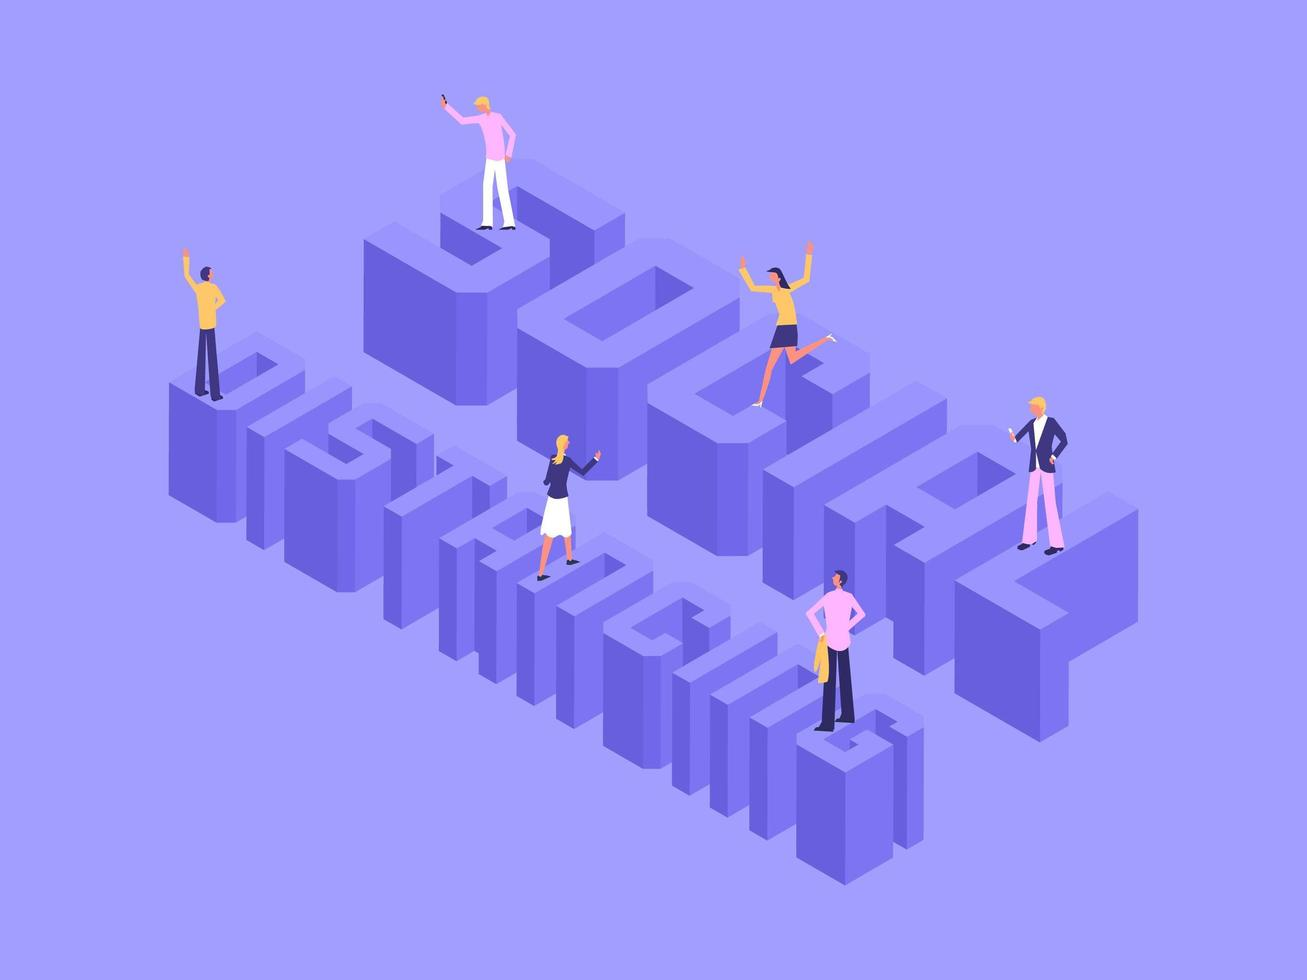 3D Isometric Social Distancing Lettering With People vector